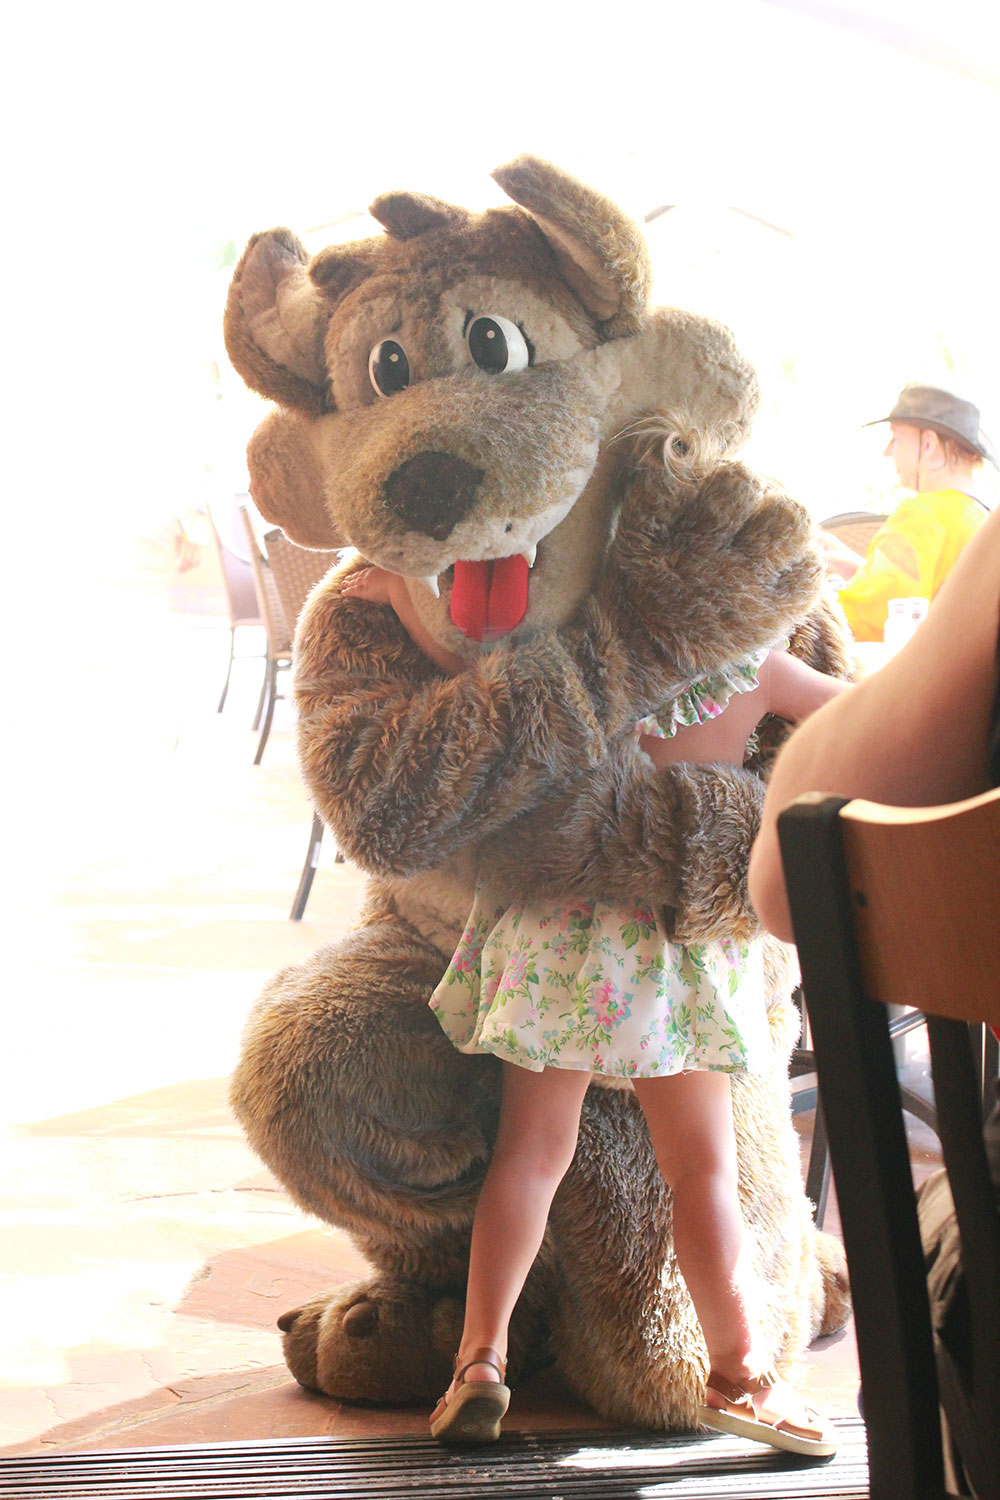 so excited to meet the resort mascot, yote the coyote | thelovedesighnedlife.com